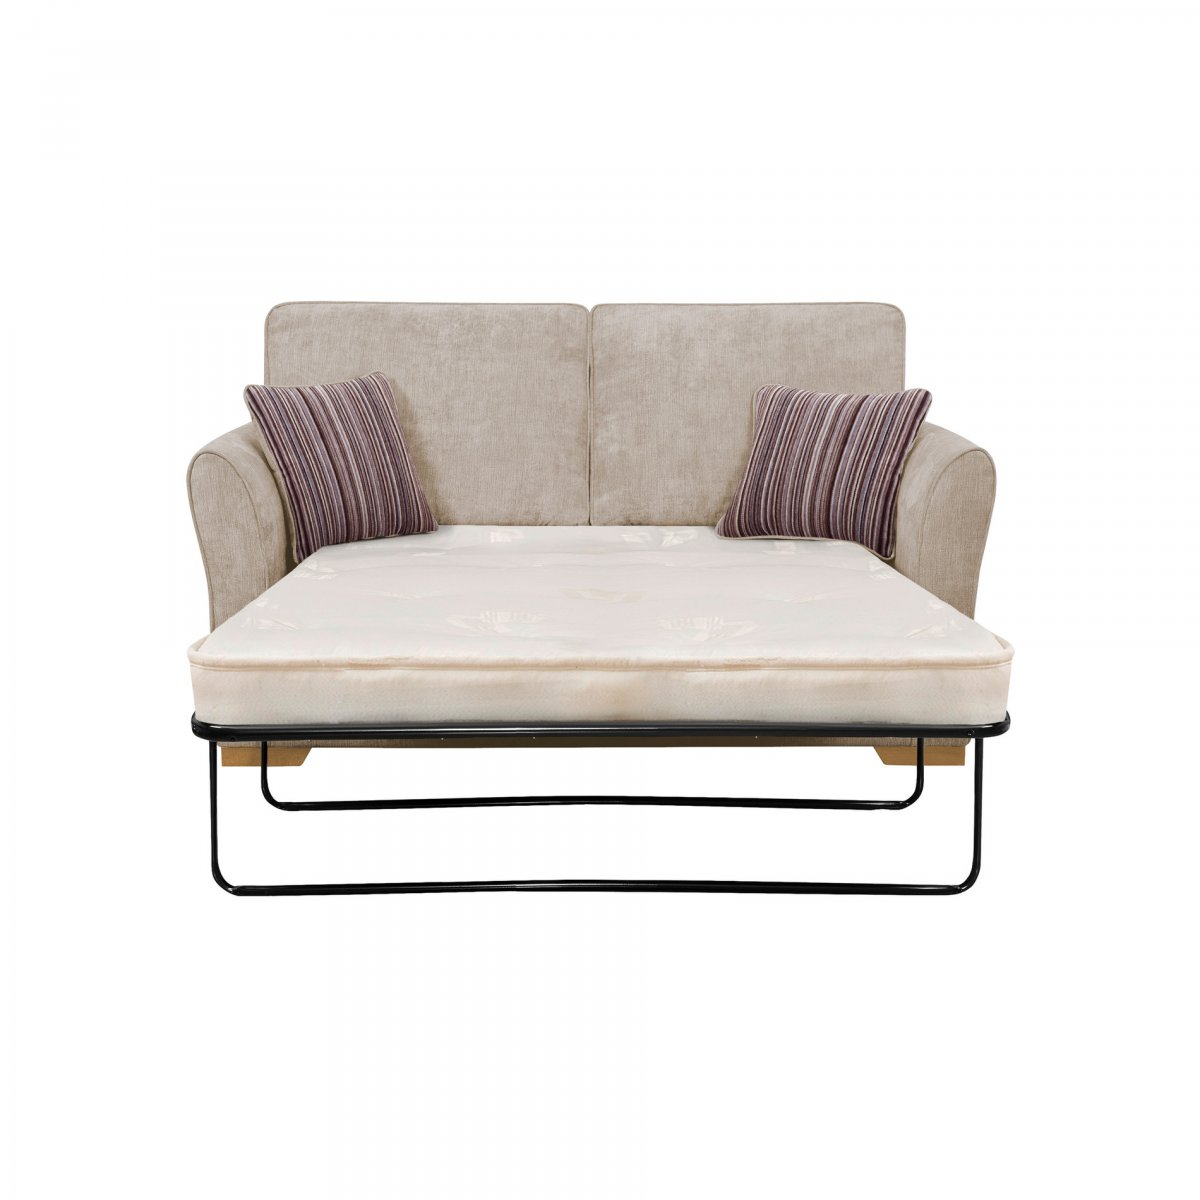 Jasmine 2 seater sofa bed with deluxe mattress in silver for Sofa bed 180cm